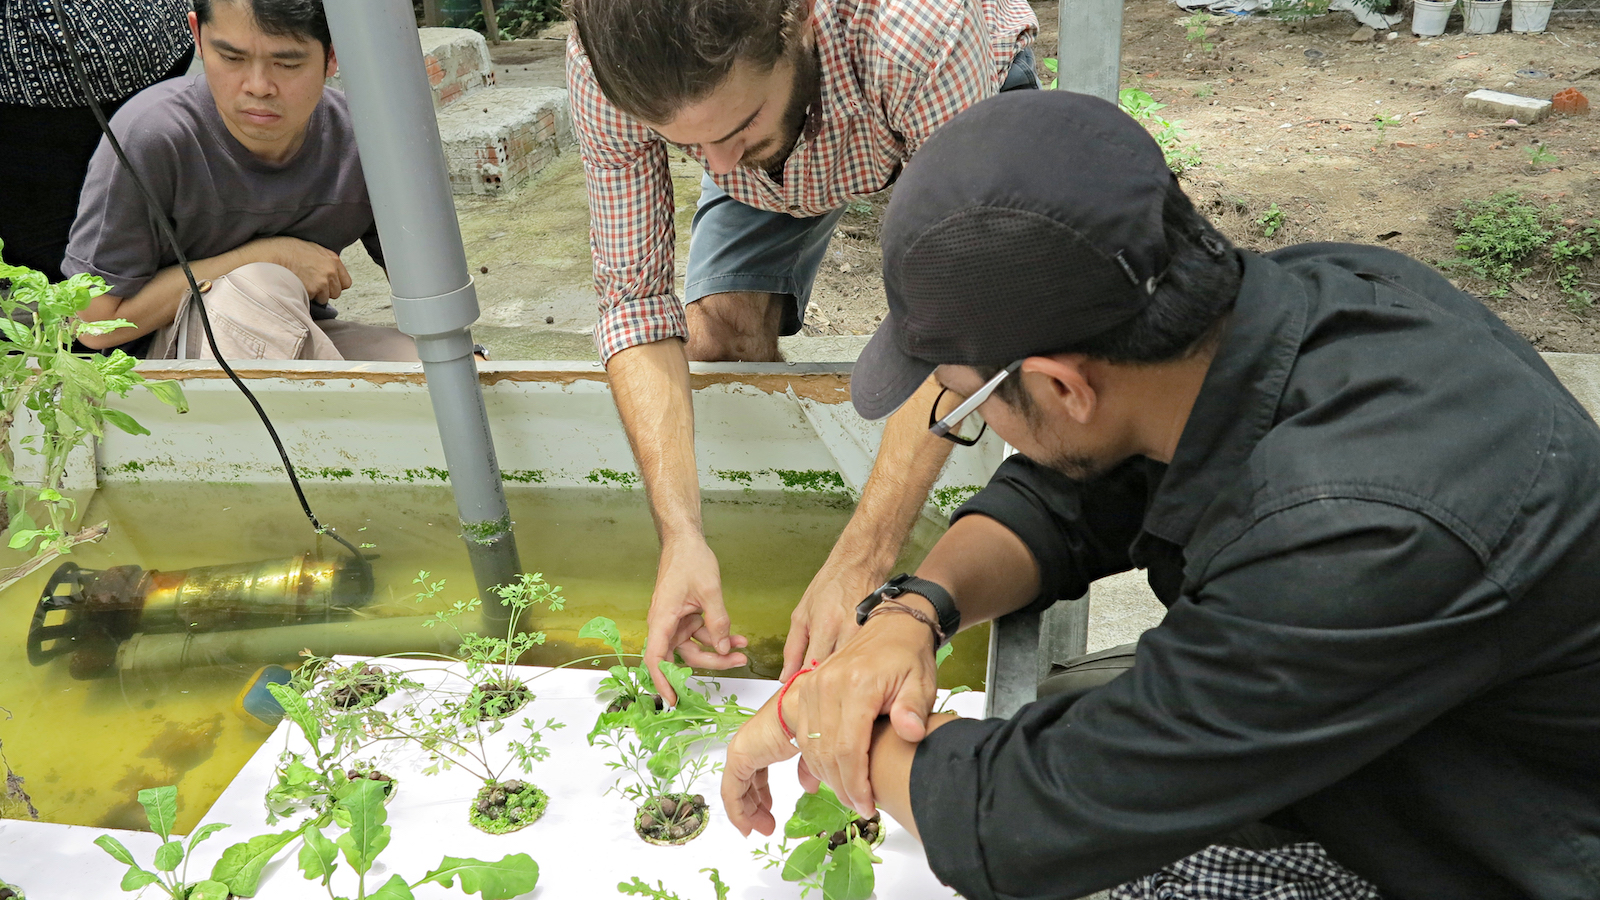 A group of young Asian scientists gather around a container where many plants have been planted and are growing in rows